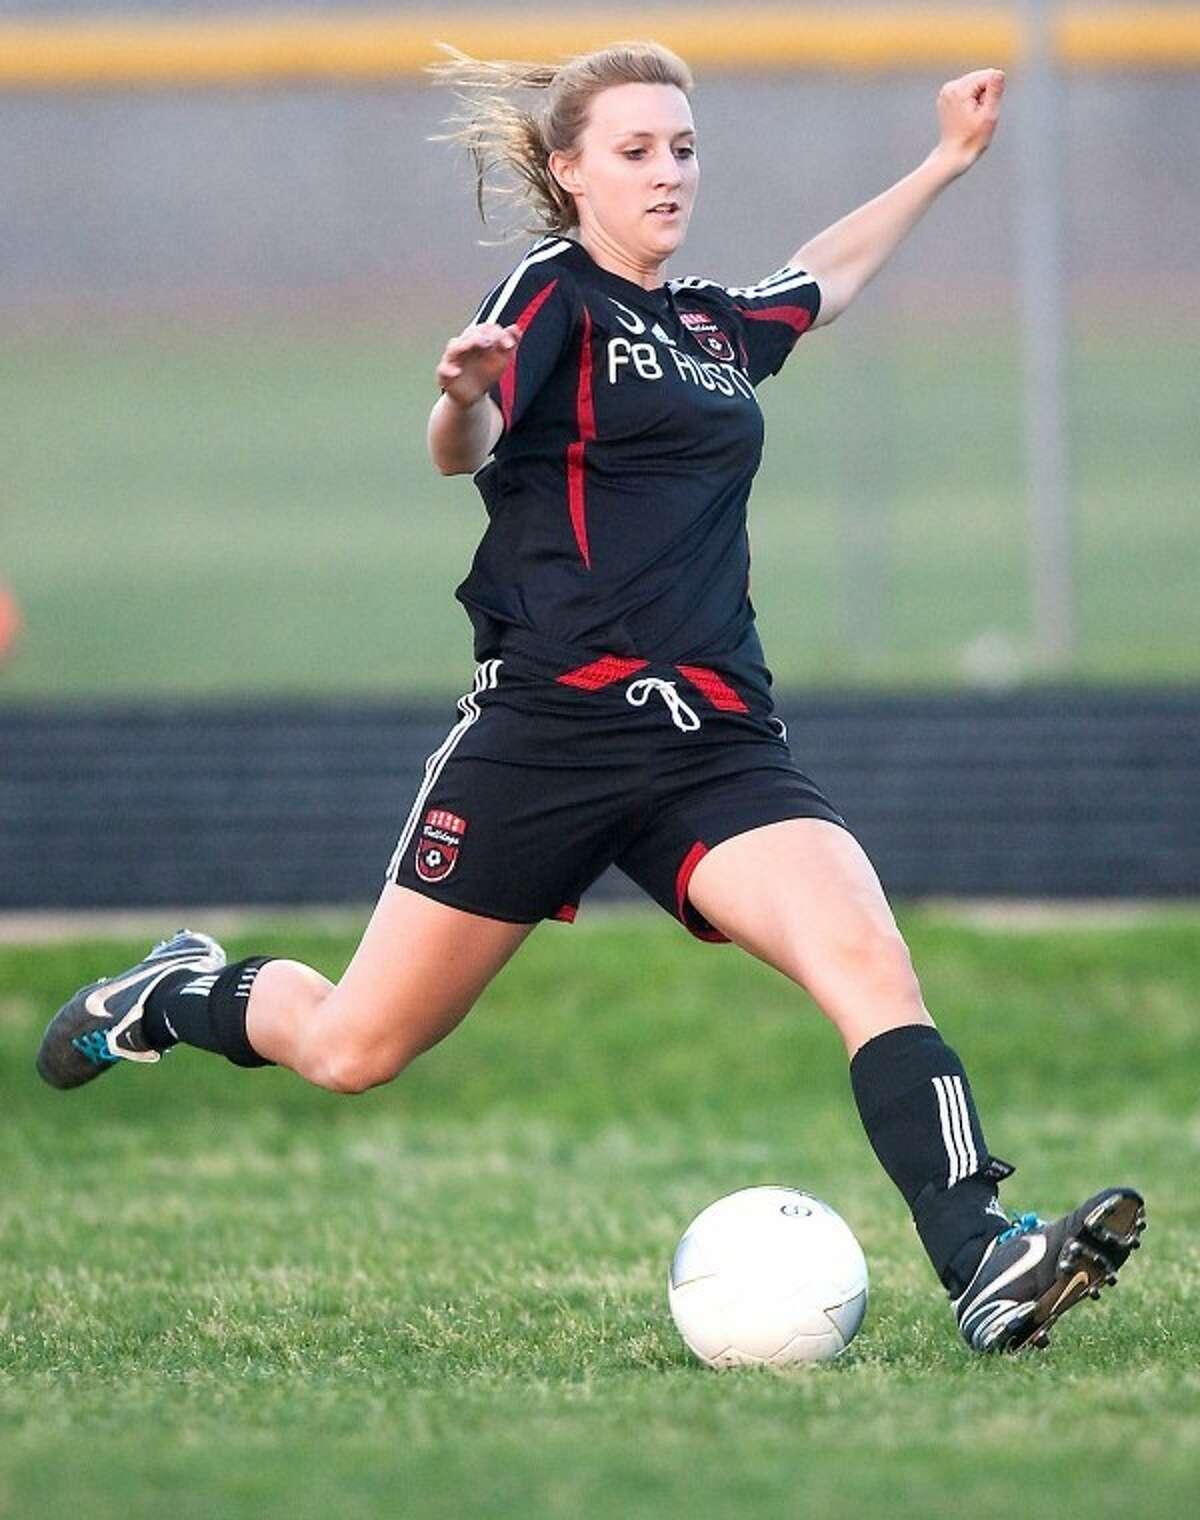 Senior Kate Kincaid has been a mainstay on the Austin girls soccer team defense that allowed three goals in 18 district games. The Lady Bulldogs open the postseason against Brazoswood on Tuesday.